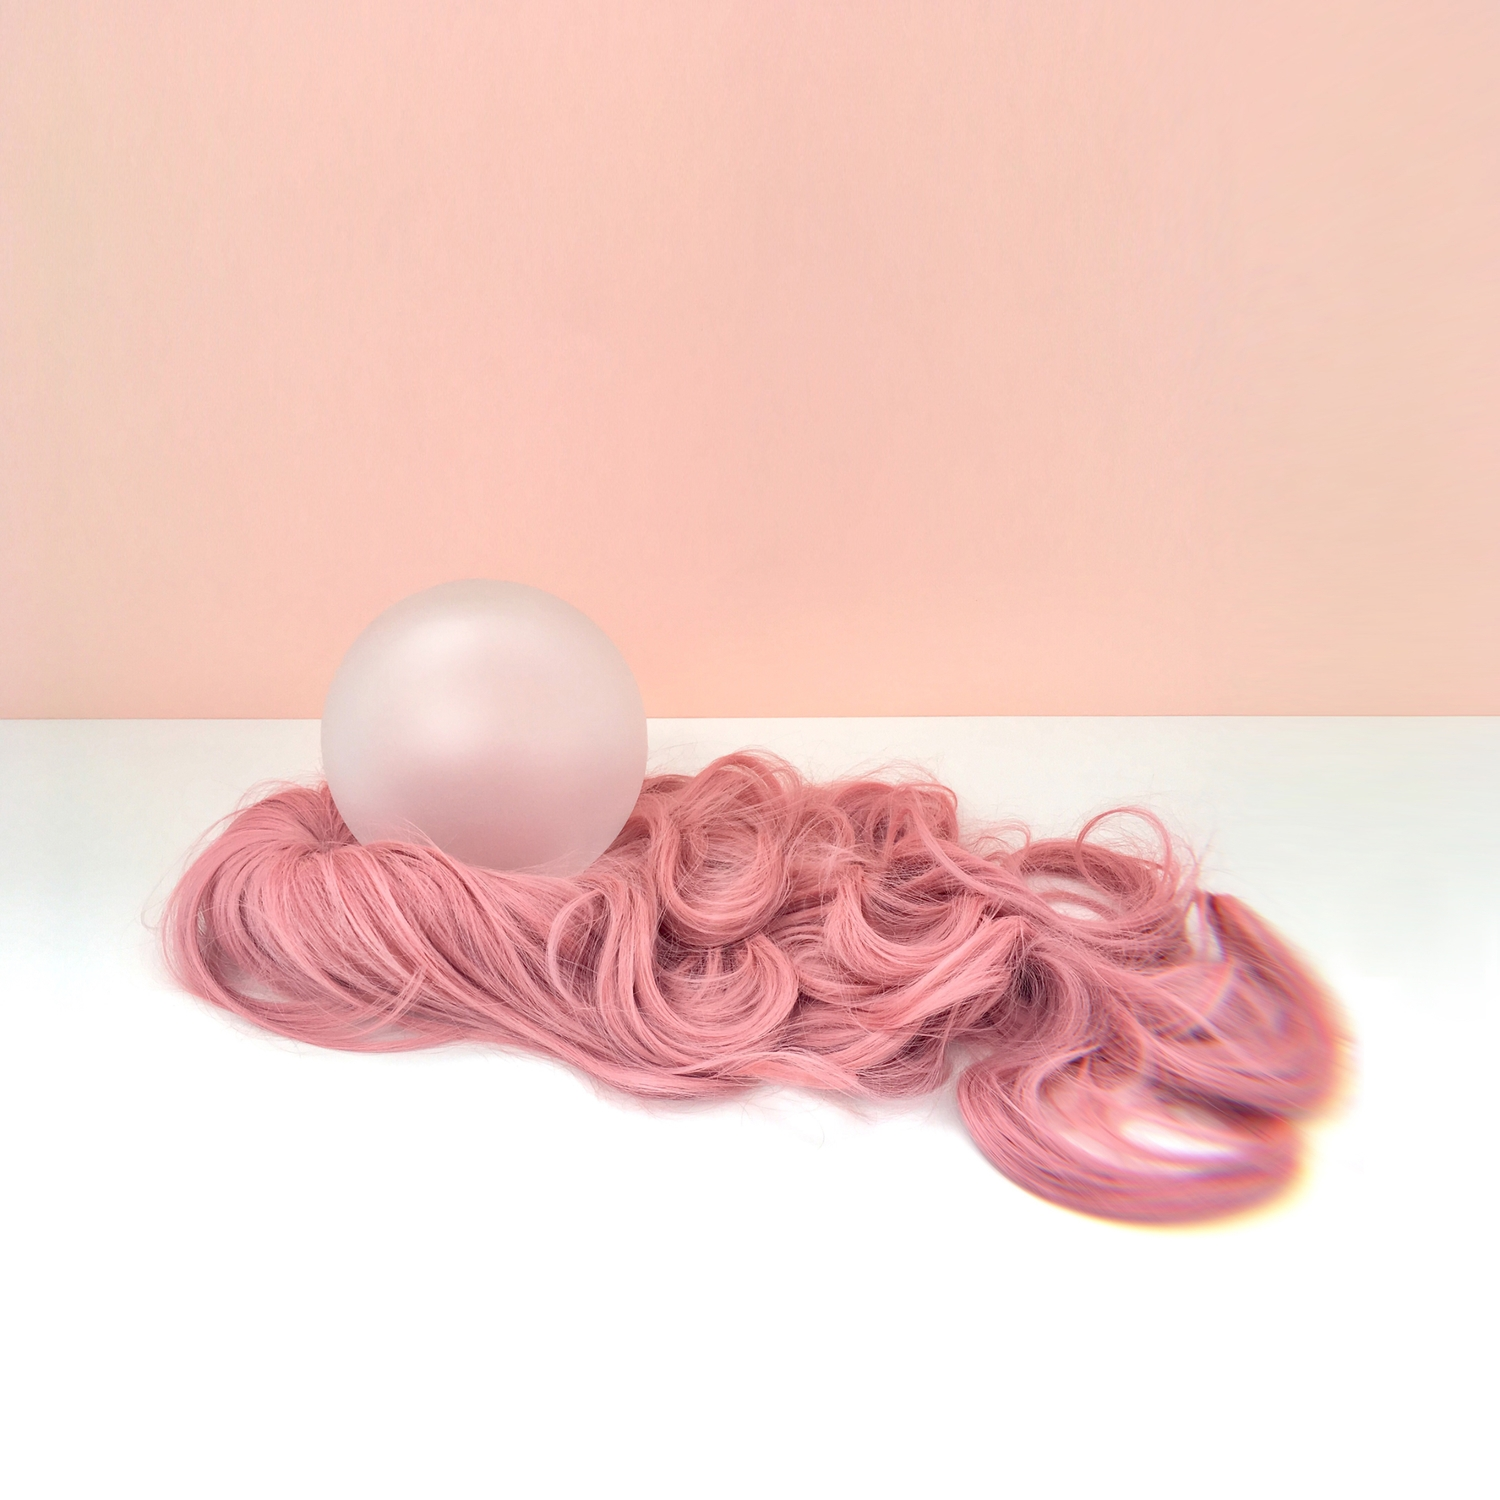 Bubble gum matte glass ball • synthetic hair, 600 x 200 mm